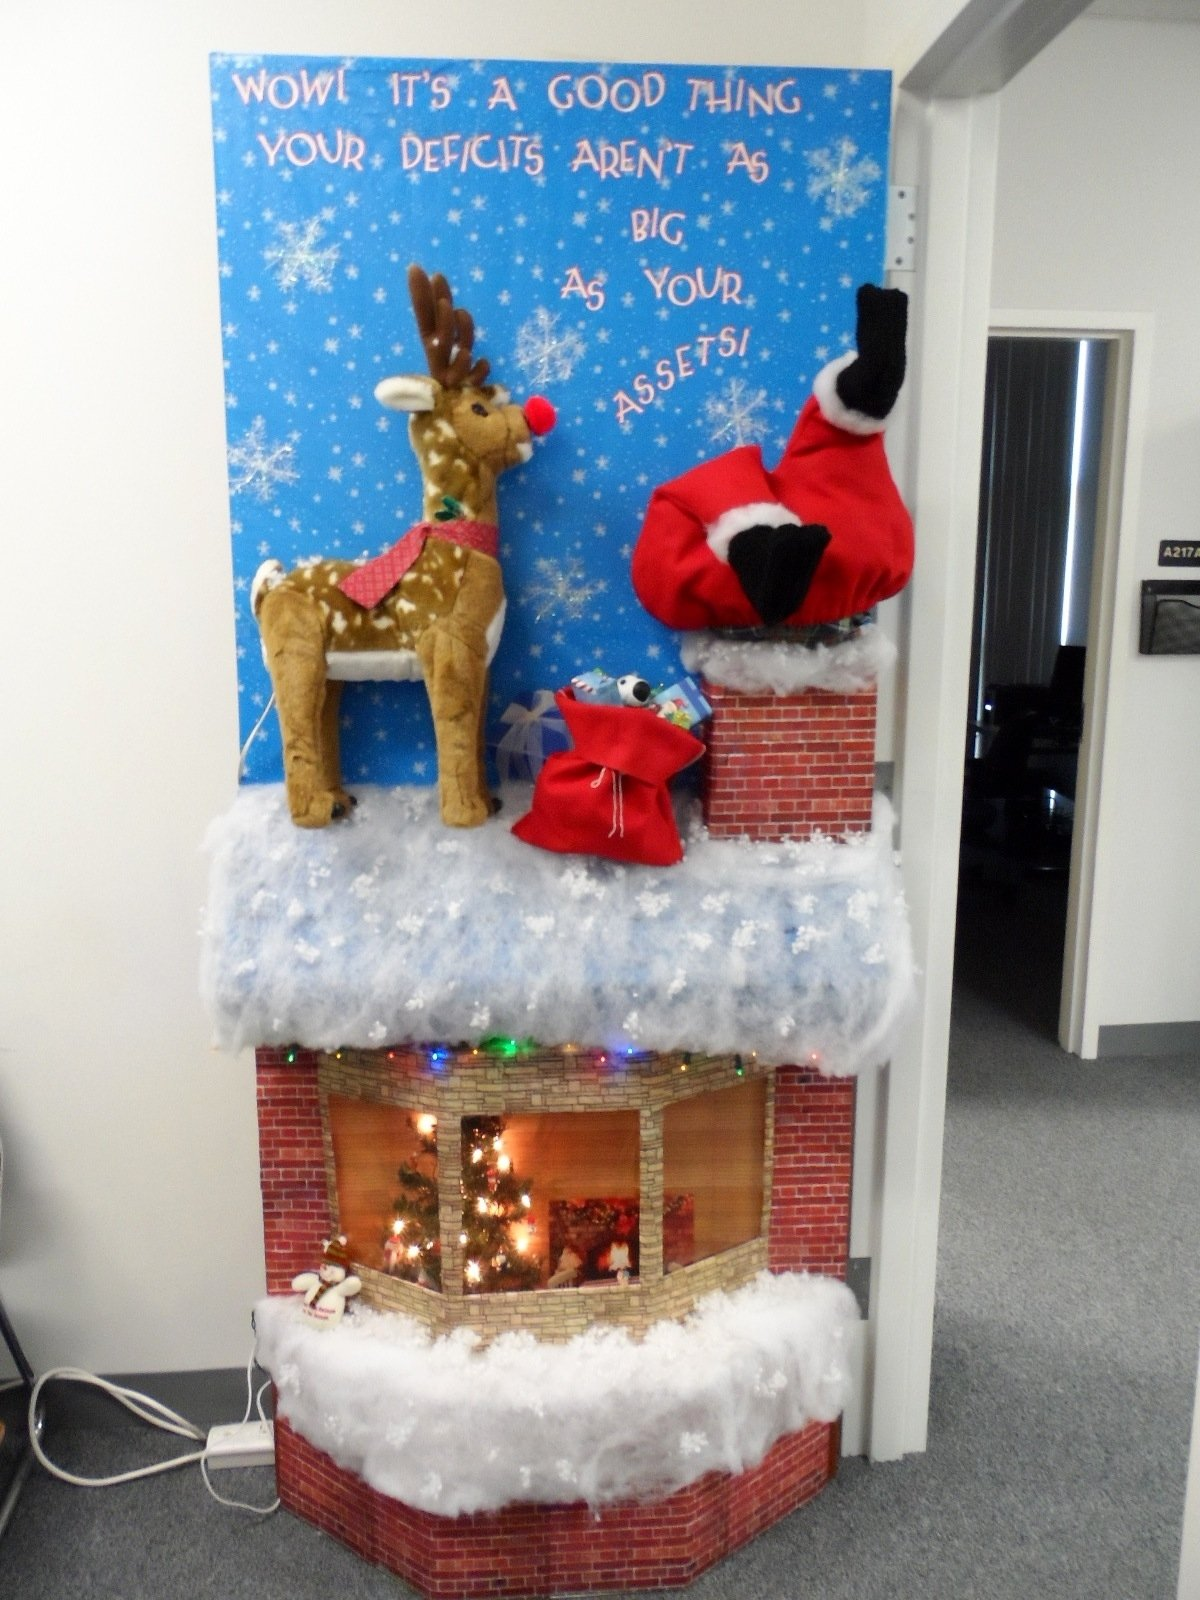 10 Spectacular Christmas Office Door Decorating Ideas 2019